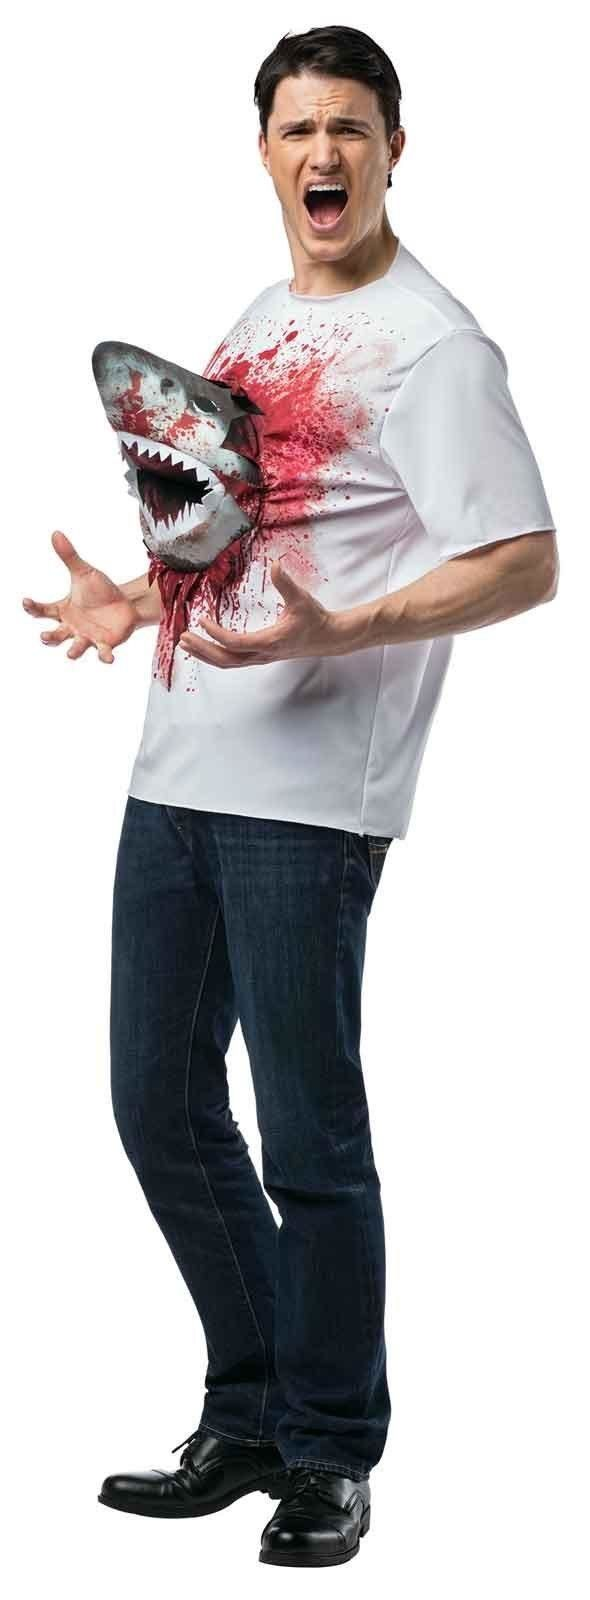 "This <a href=""http://www.buycostumes.com/p/806863/sharknado-with-shark-t-shirt"" target=""_blank"">shark shirt</a> is perfect fo"